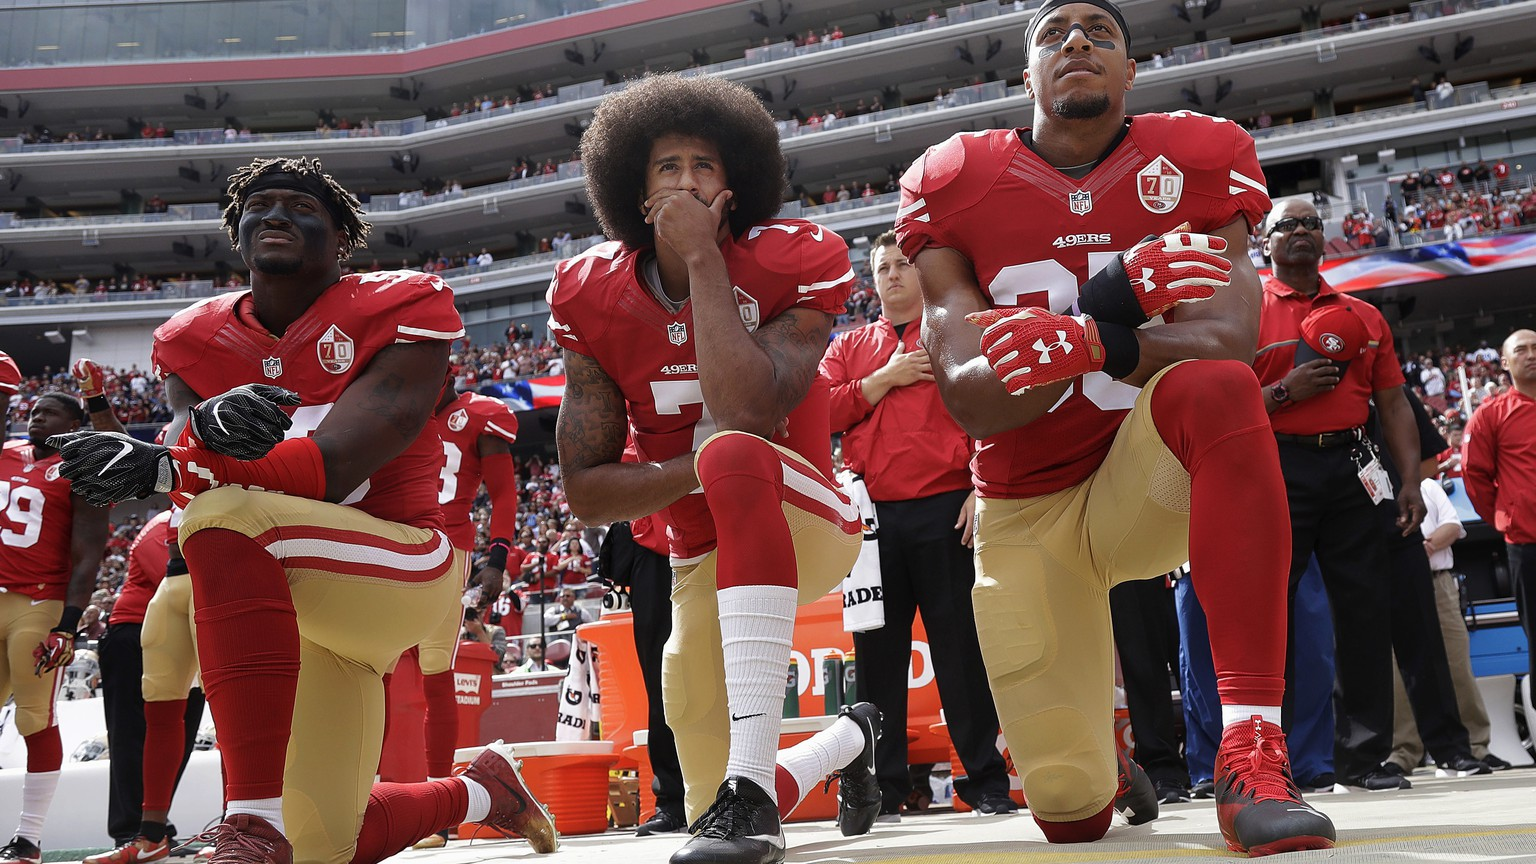 FILE - In this Oct. 2, 2016, file photo, San Francisco 49ers outside linebacker Eli Harold, left, quarterback Colin Kaepernick, center, and safety Eric Reid kneel during the national anthem before the team's NFL football game against the Dallas Cowboys in Santa Clara, Calif. Kaepernick accepted Sports Illustrated's Muhammad Ali Legacy Award from Beyonce on Tuesday night, Dec. 5, 2017, and promised that